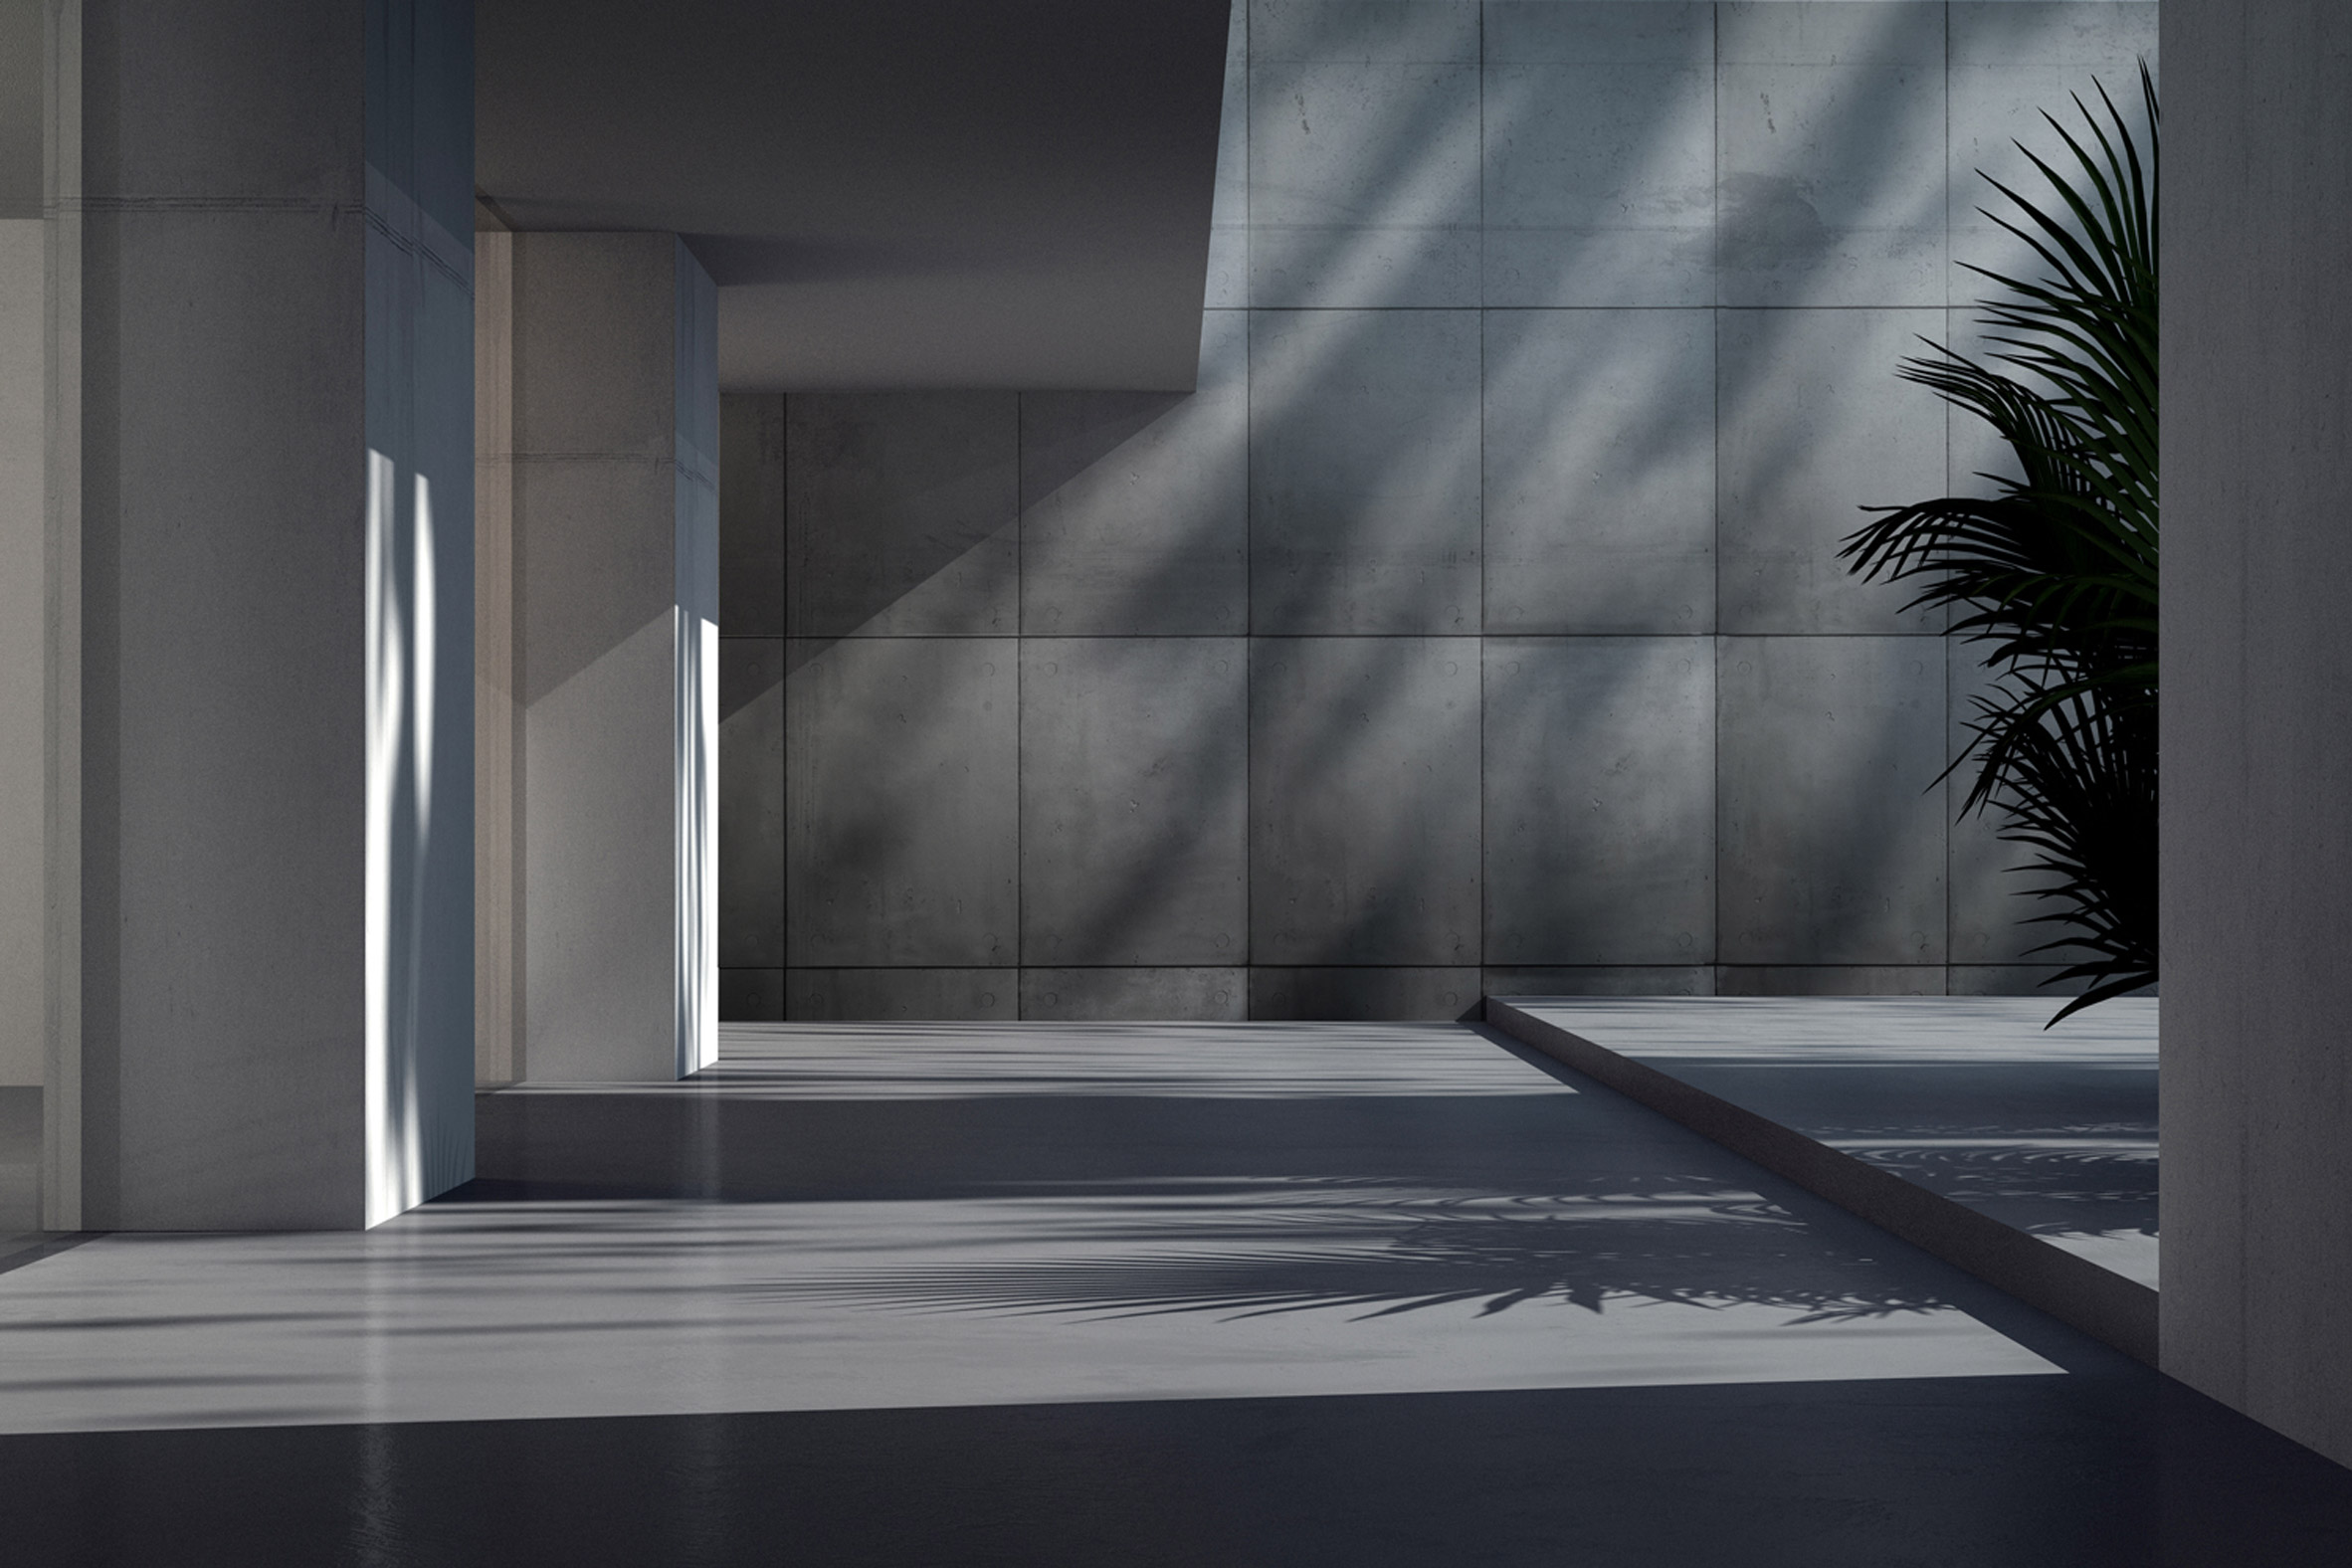 Concrete Optik coating by Ideal Work in a foyer